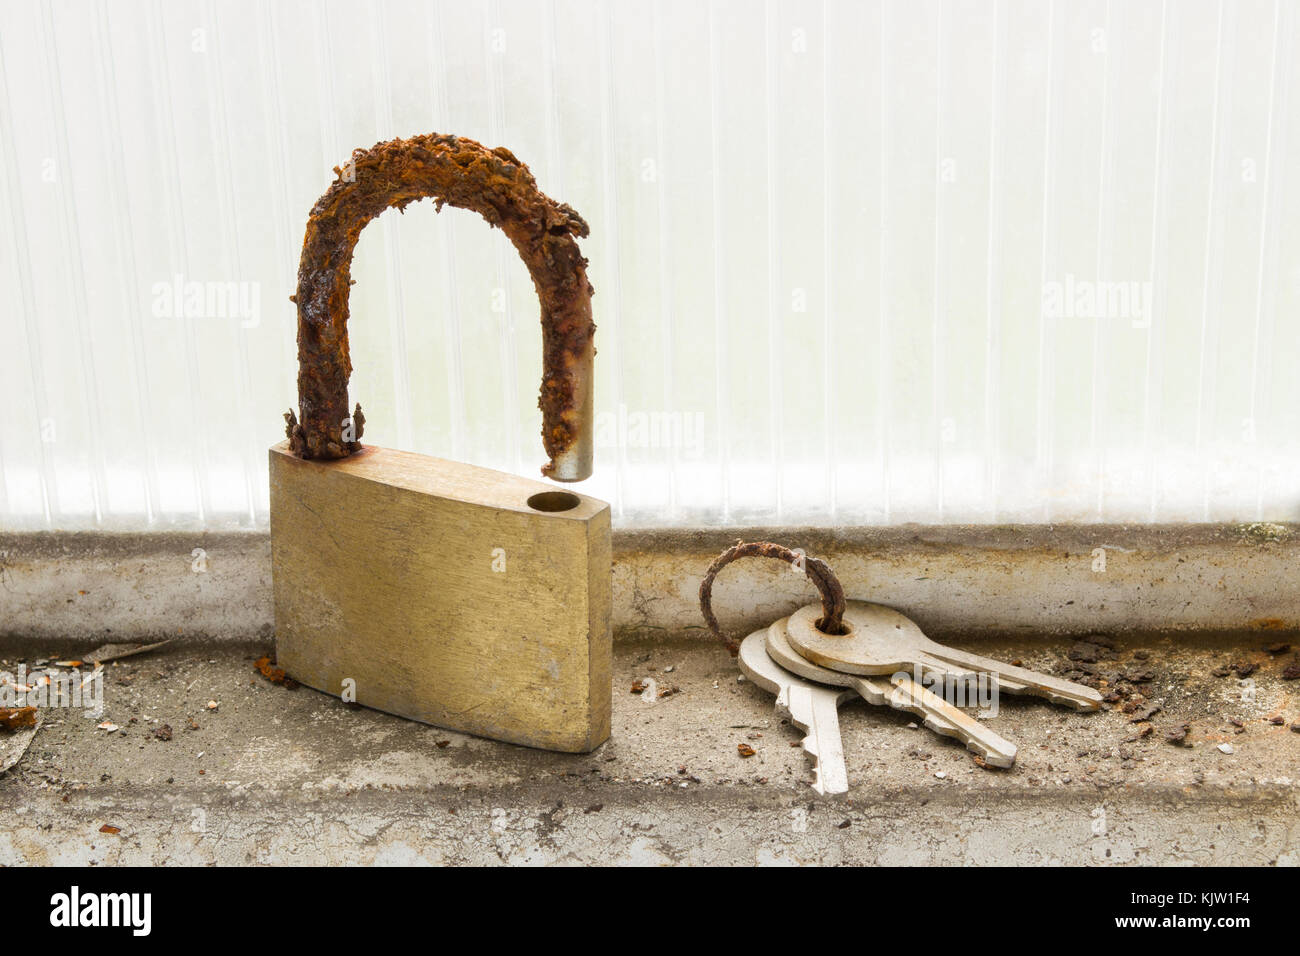 A lock and a set of keys look totally deteriorated and unusable due to the effect of the humidity and corrosion. - Stock Image